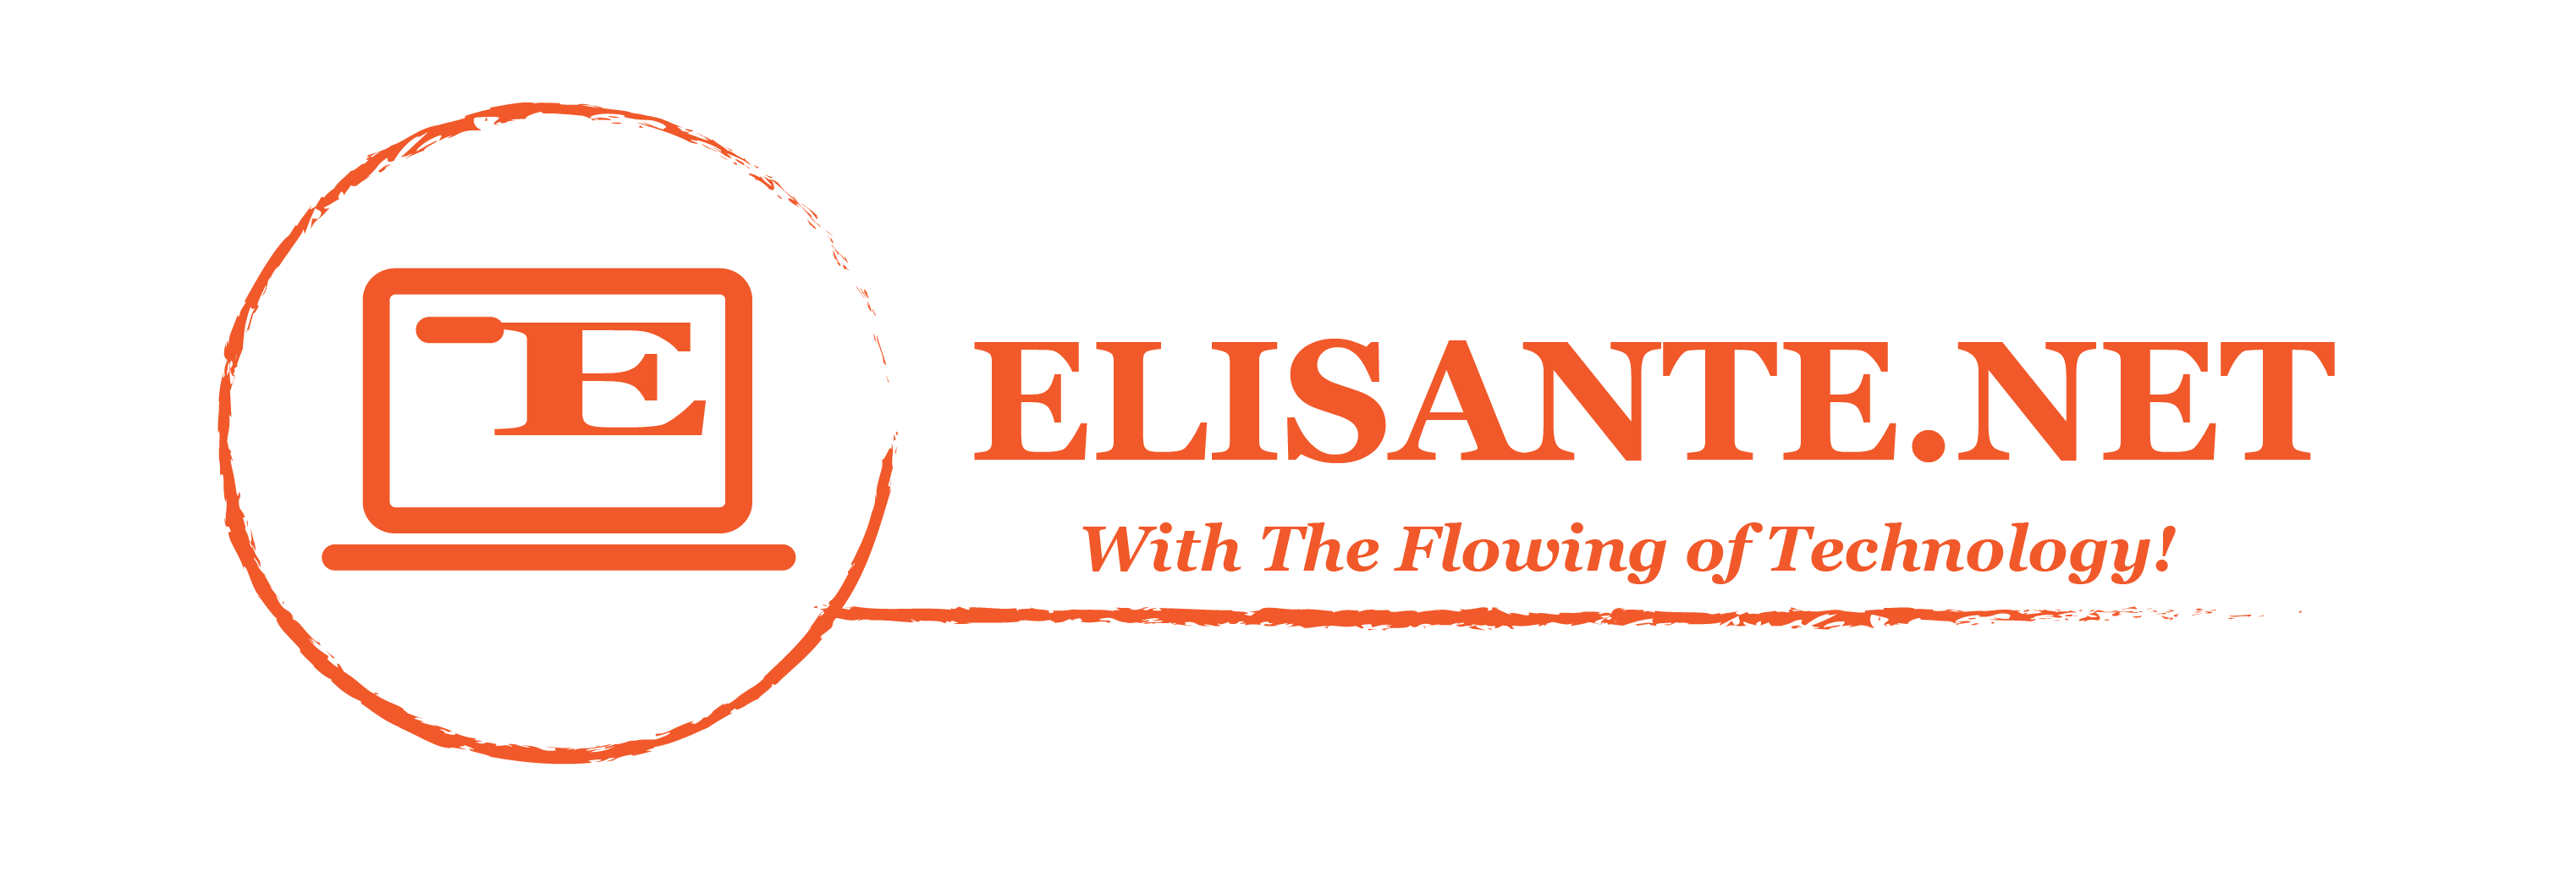 ELISANTE.NET_FULL_LOGO_Transparent_Cropped_V4.1